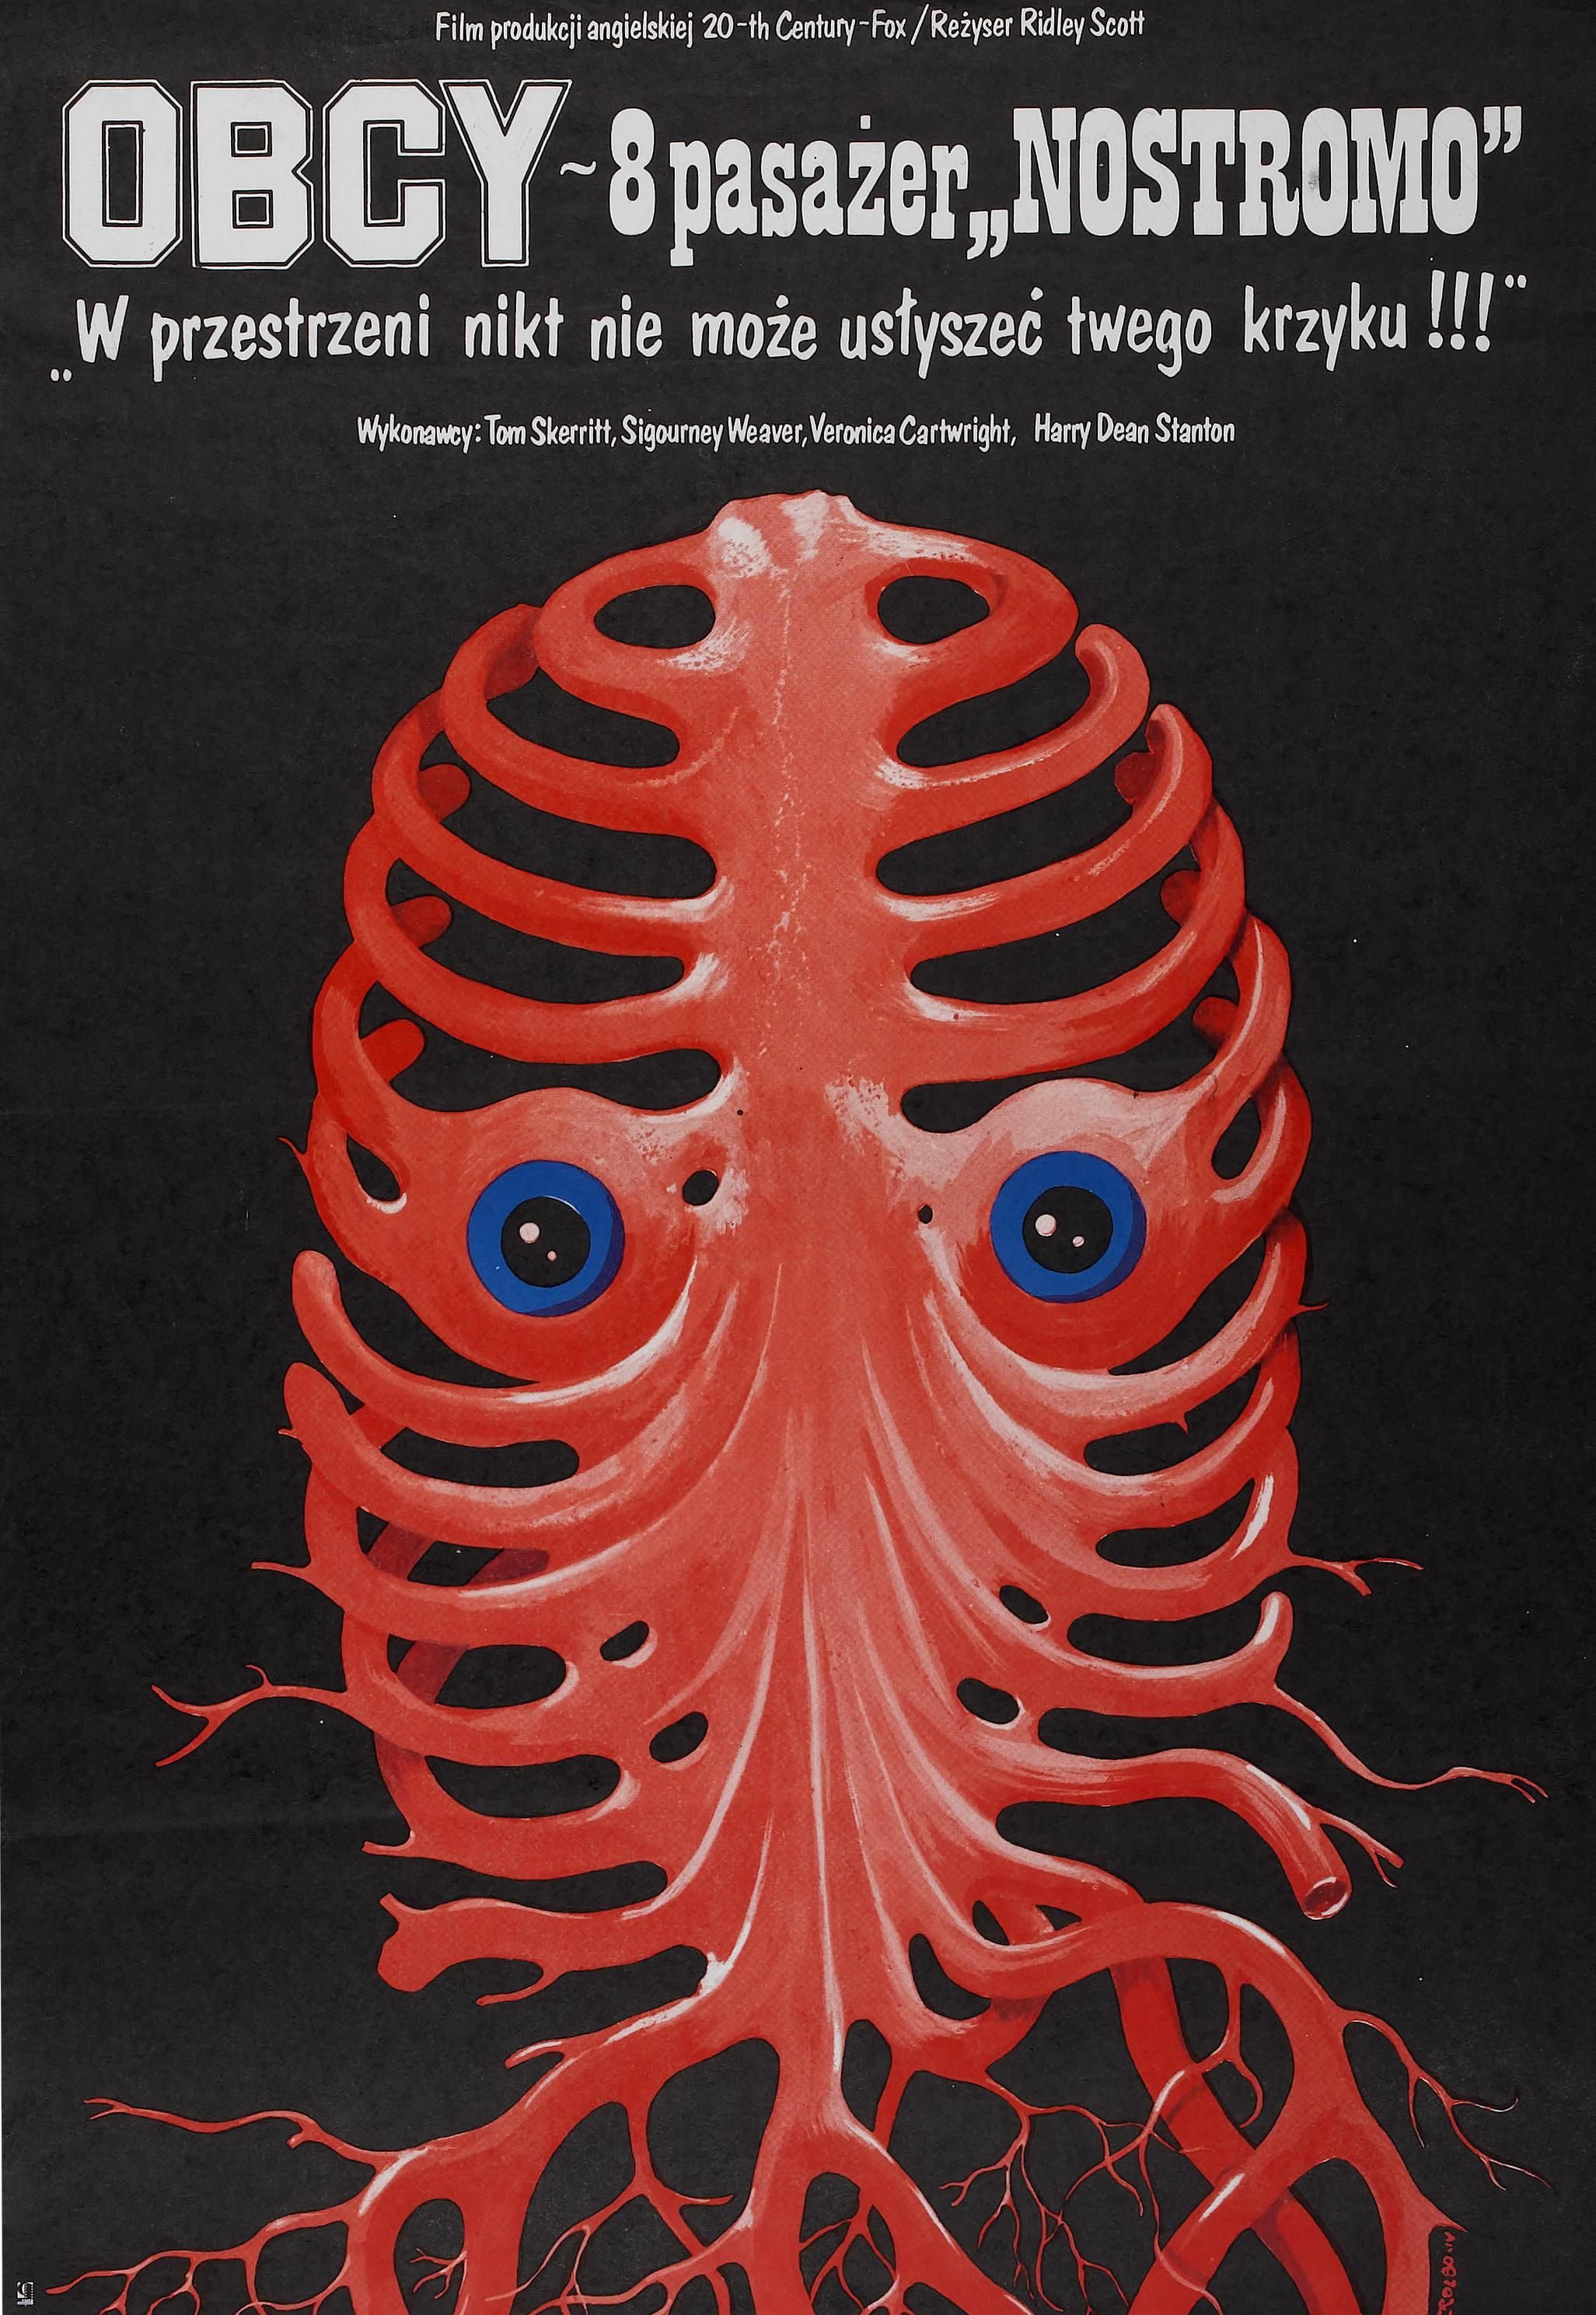 # polishdesign #movieposter #alien